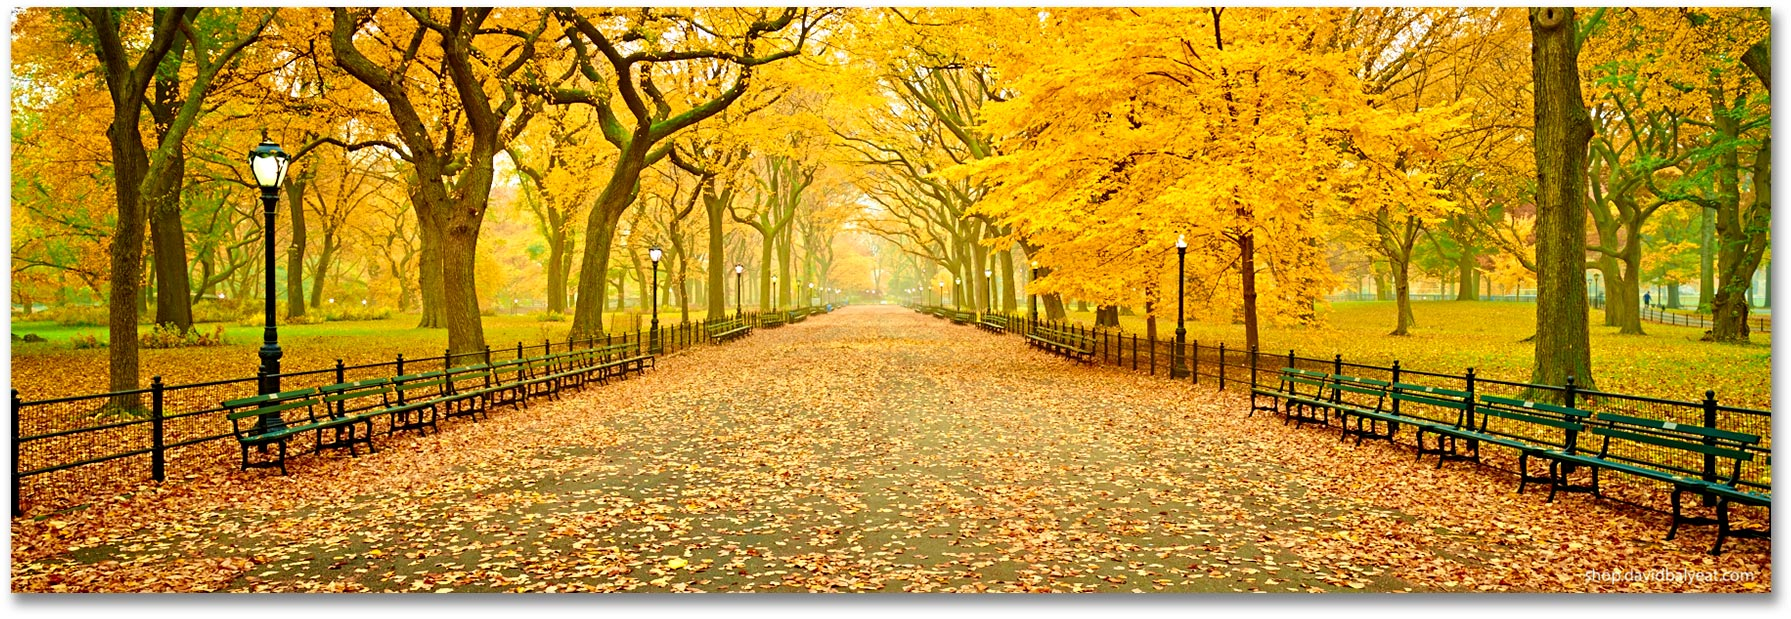 Central Park New York Panoramic Fall Autumn Literary Walk High Definition Hd Professional Landscape Photography Abilities Network